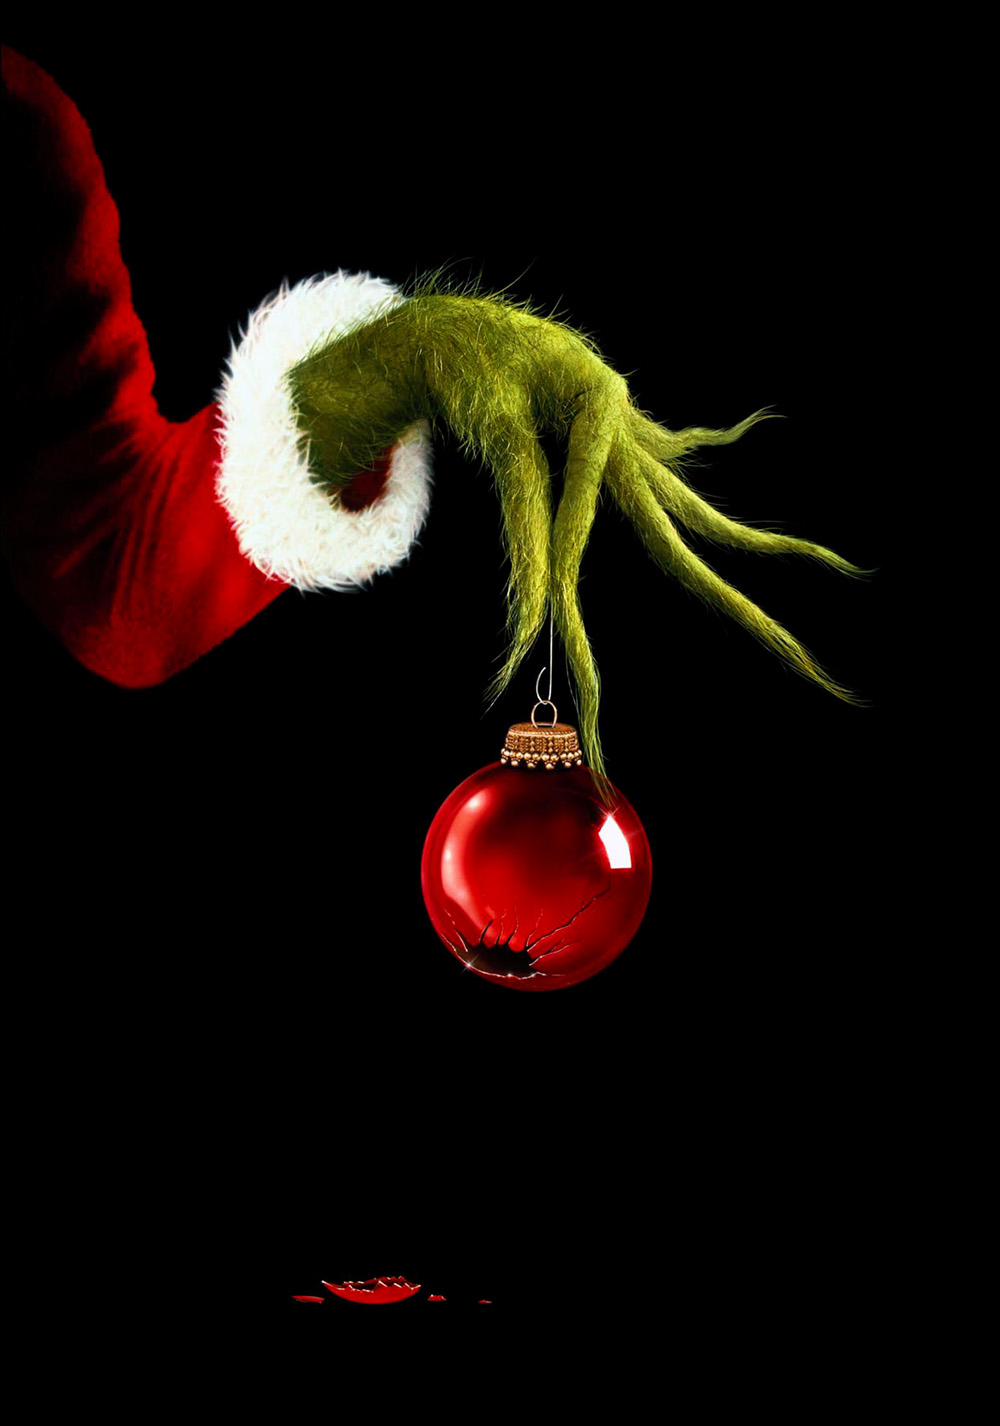 How The Grinch Stole Christmas Movie Poster.How The Grinch Stole Christmas Movie Fanart Fanart Tv